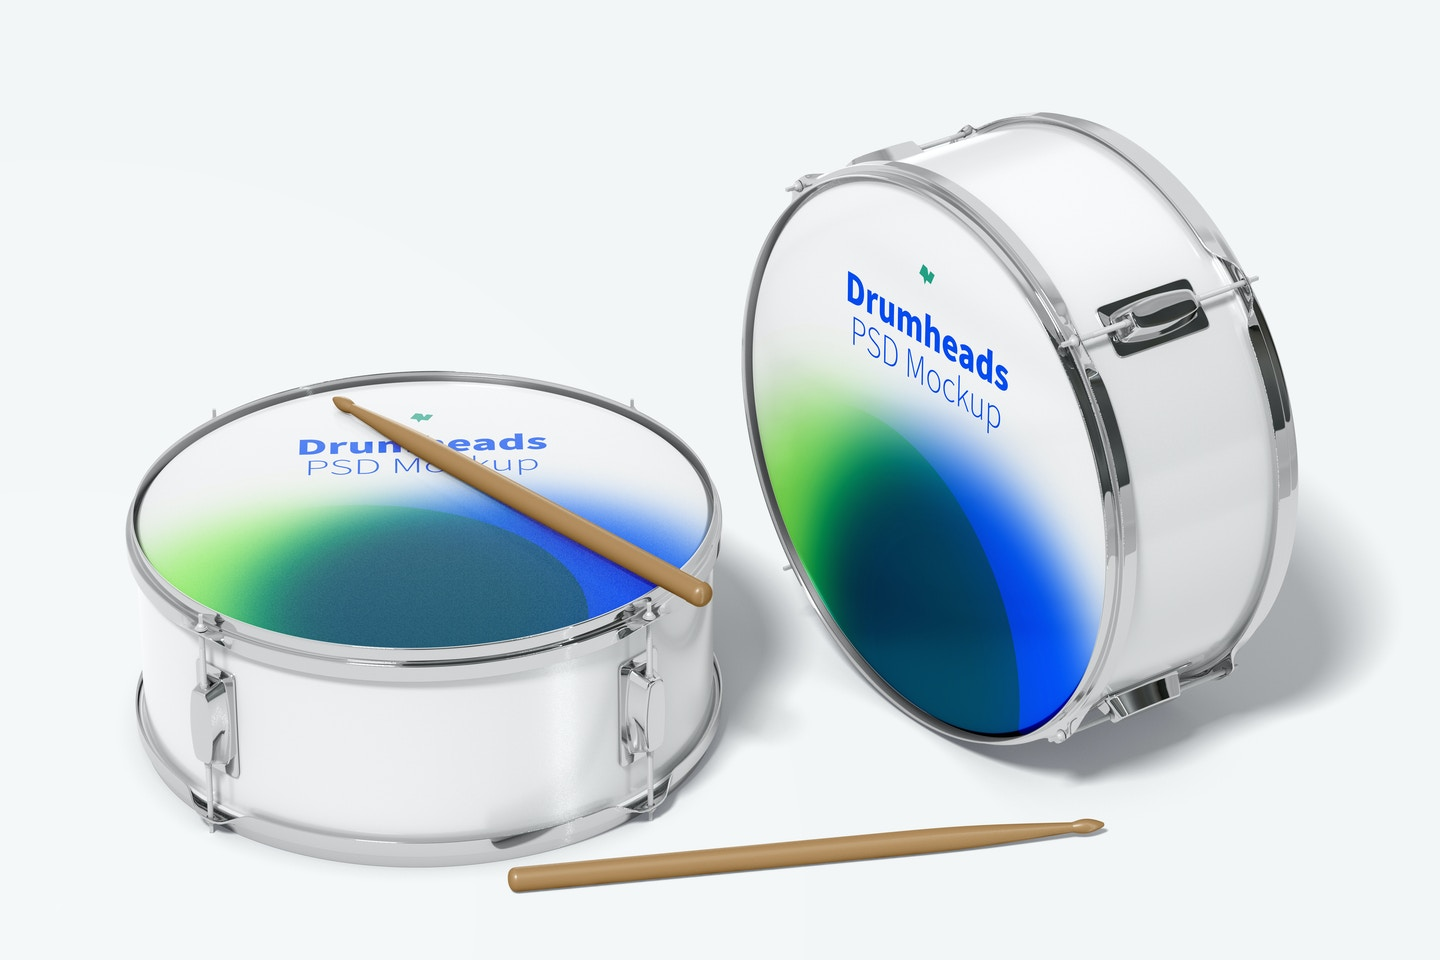 Drumheads Mockup, Perspective